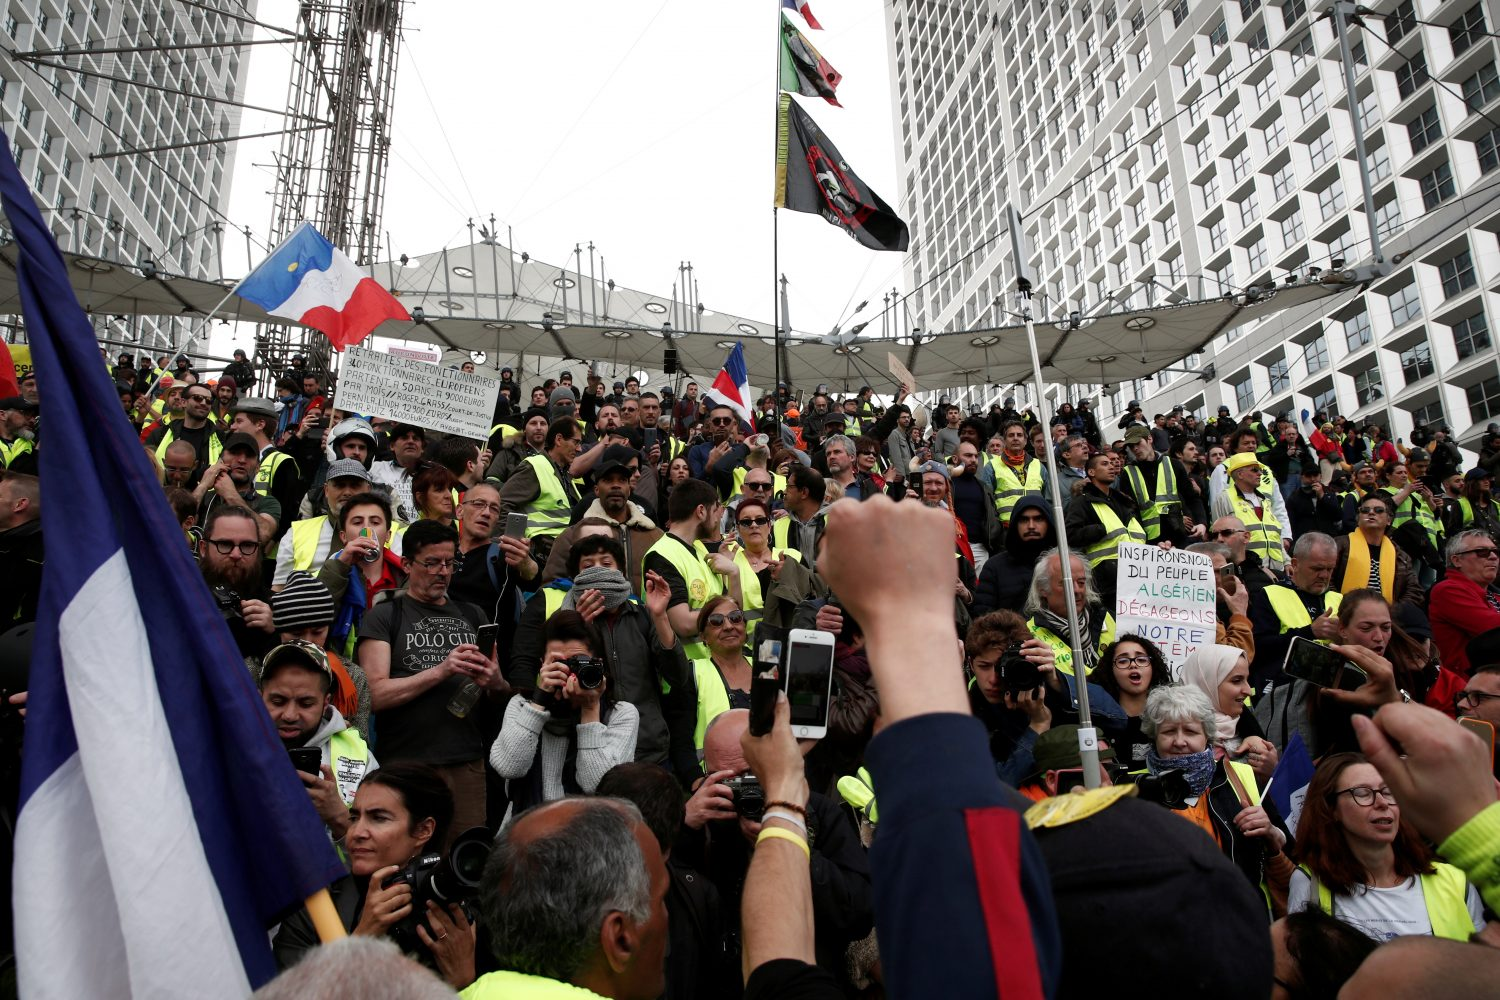 FILE PHOTO: Protesters wearing yellow vests attend a demonstration during the Act XXI (the 21st consecutive national protest on Saturday) of the yellow vests movement at the financial district of La Defense near Paris, France, April 6, 2019. REUTERS/Benoit Tessier/File Photo